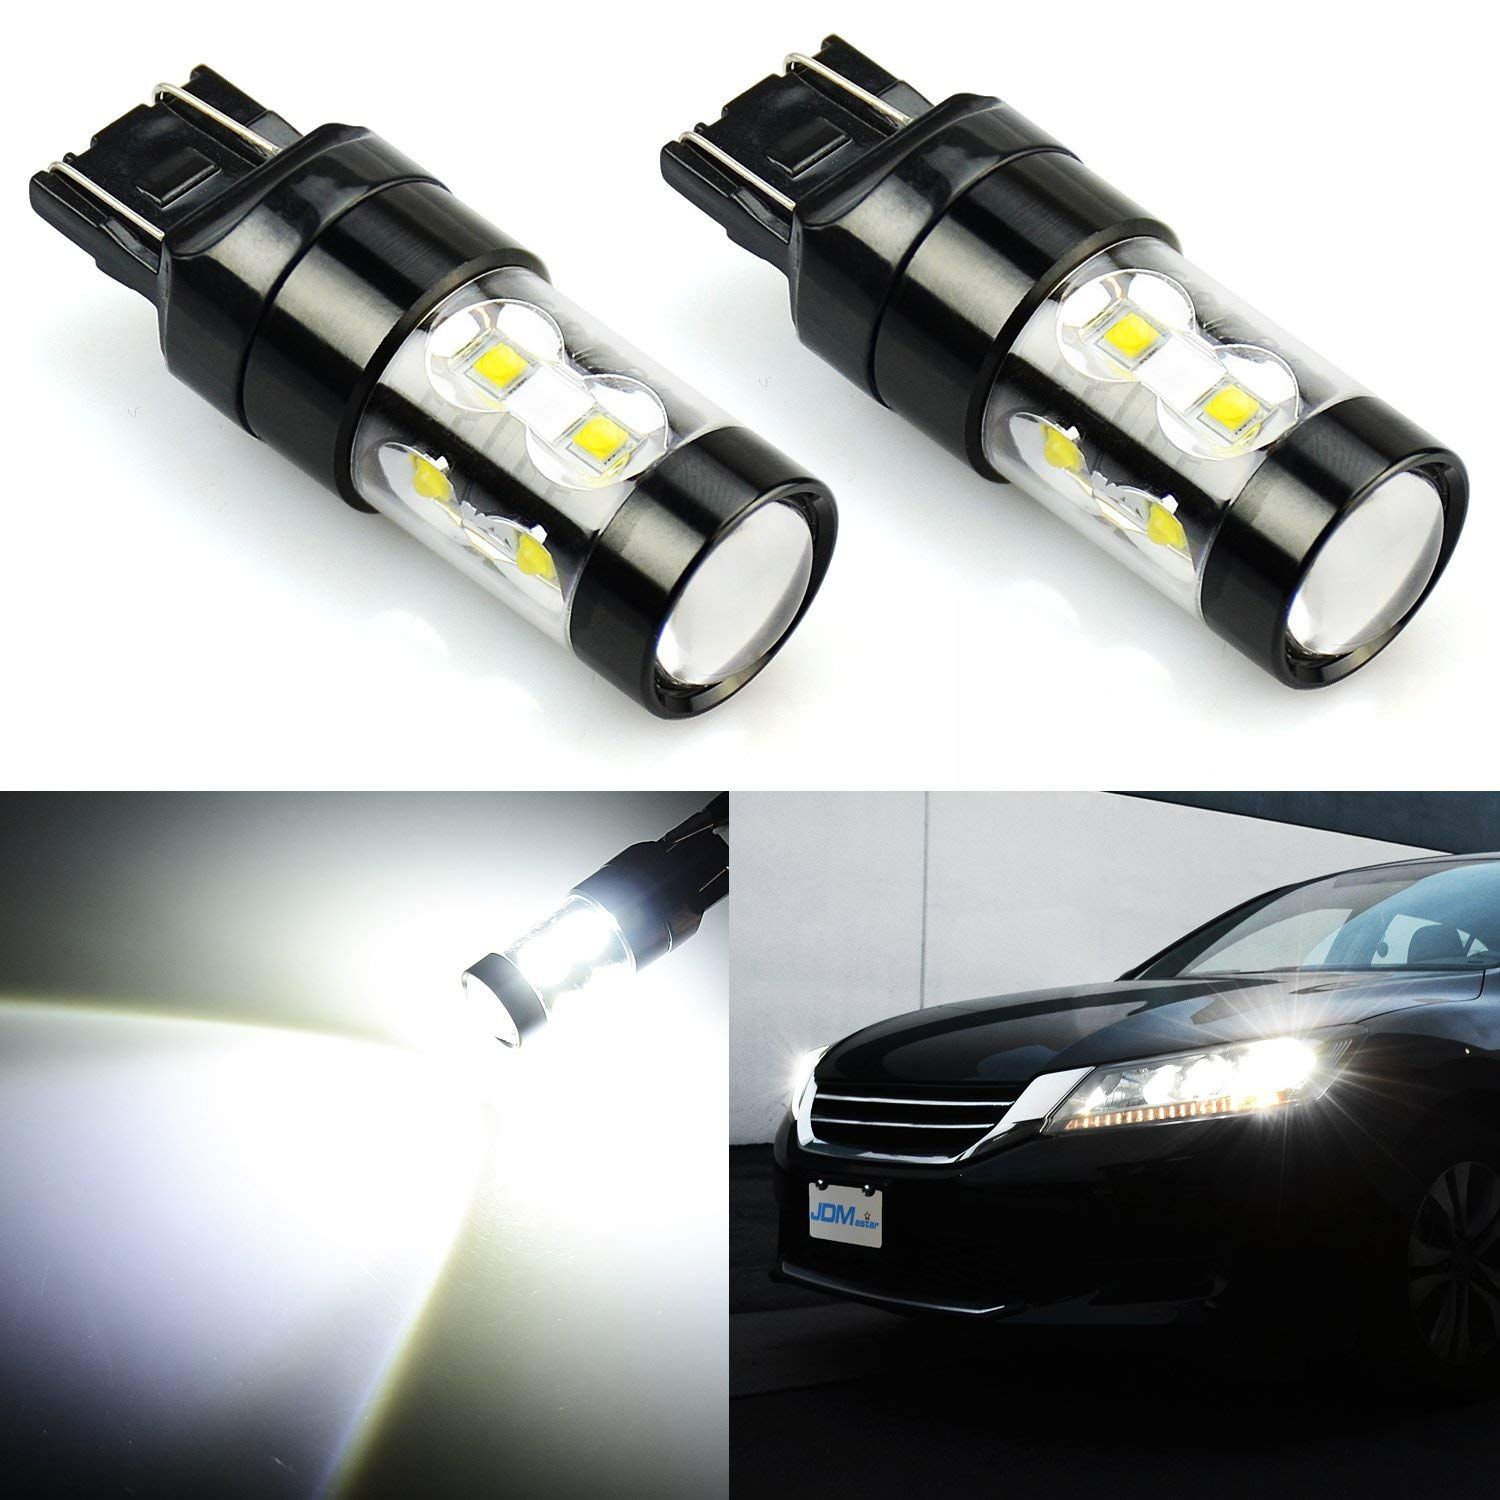 hight resolution of jdm astar extremely bright max 50w high power 7444 7443 7441 7440 led fog light bulbs for back up reverse lights xenon white price 12 49